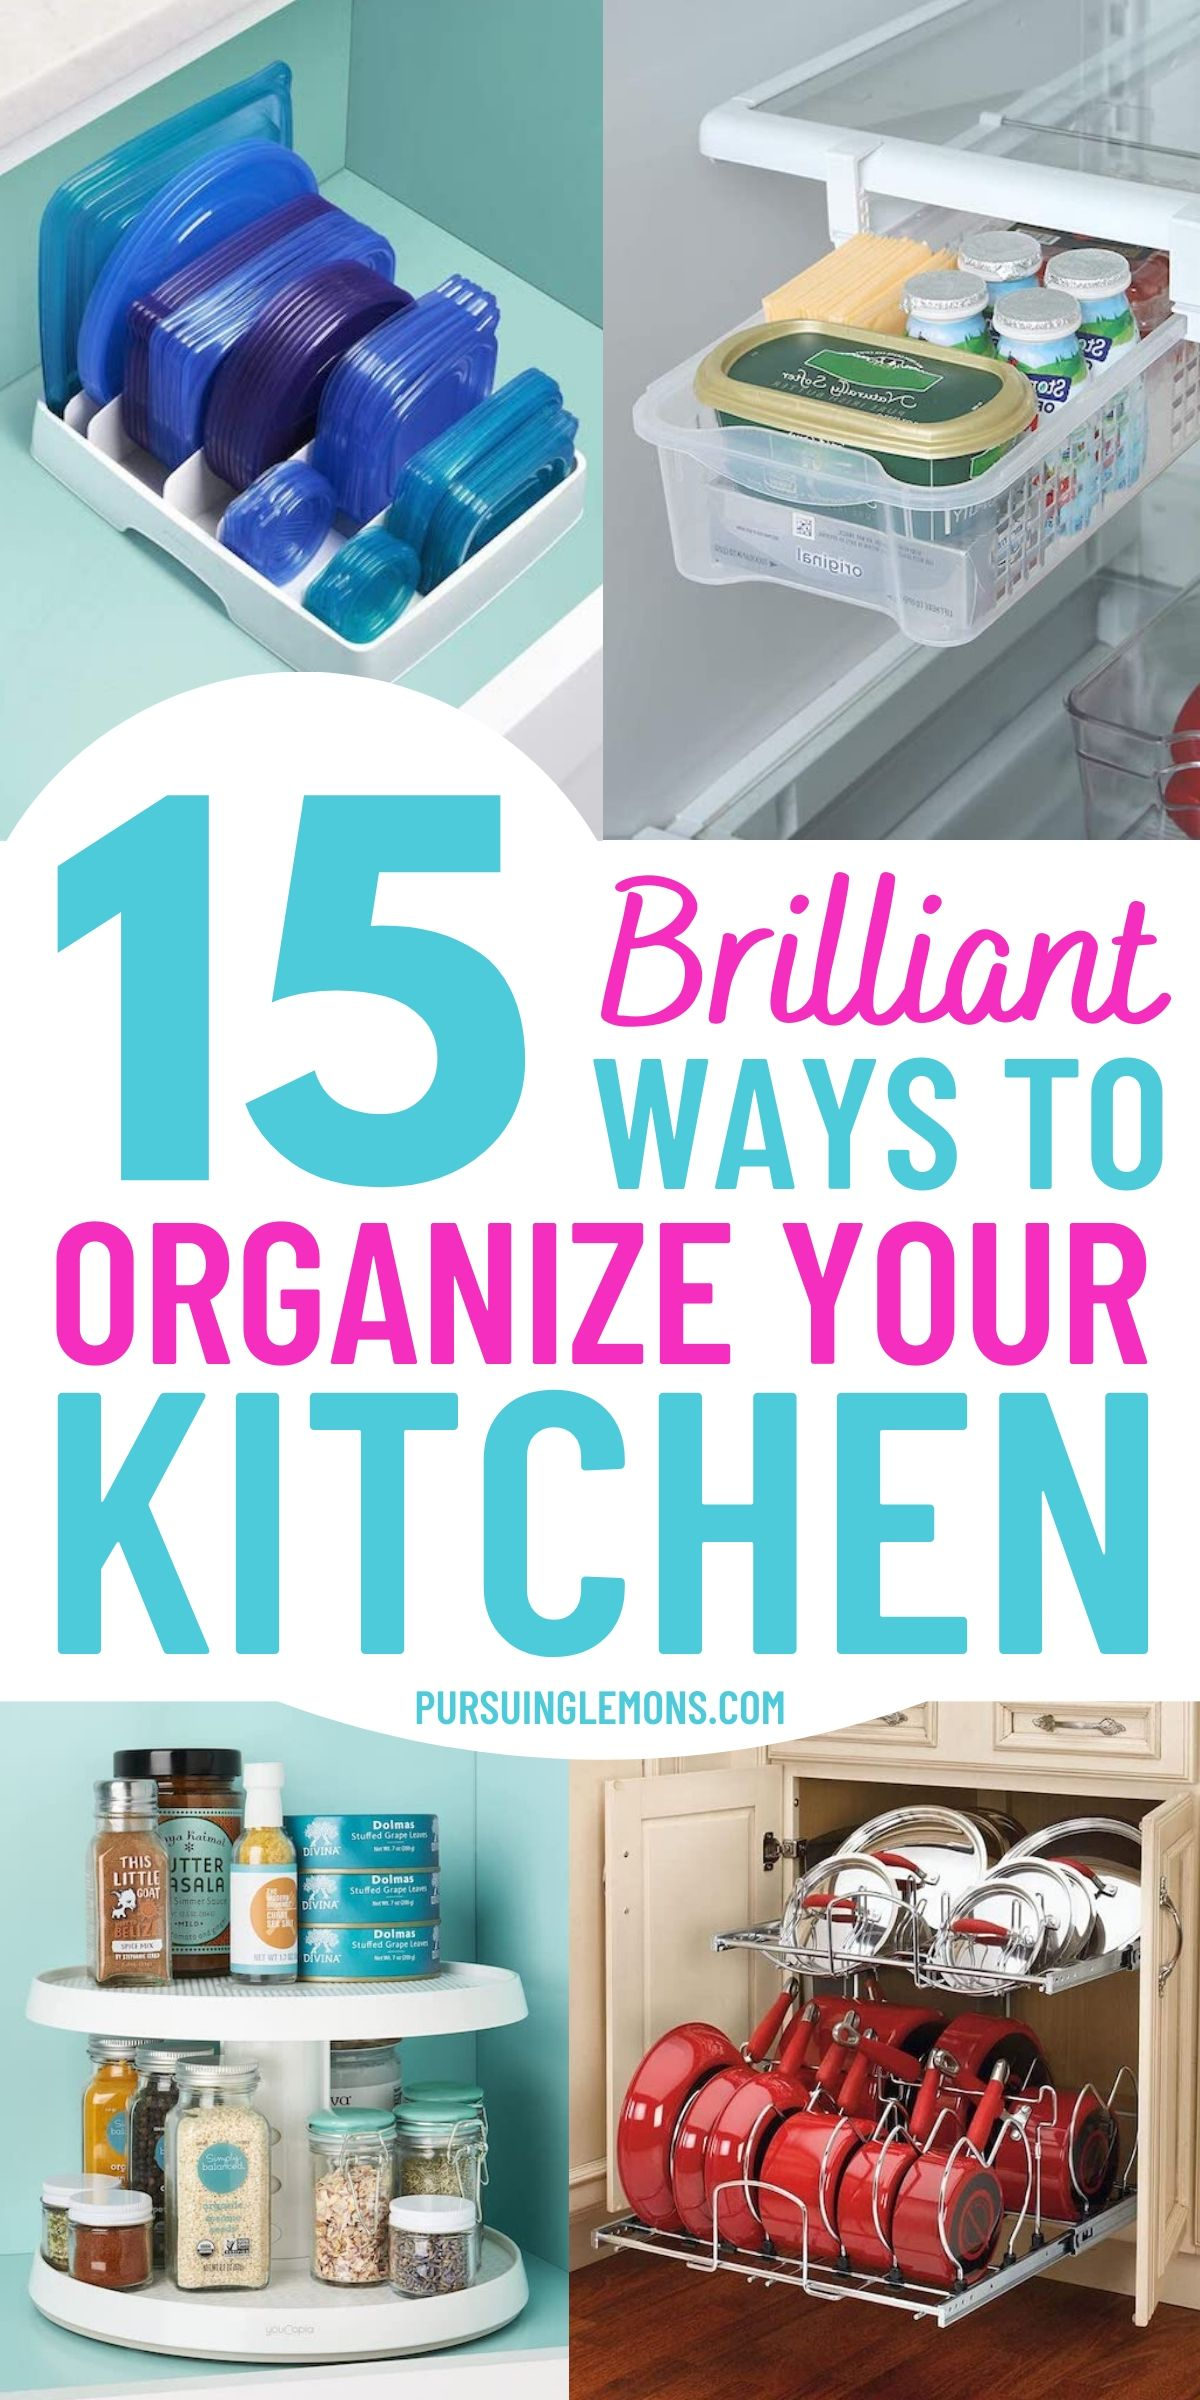 It can be hard organizing a small kitchen, especially if you lack kitchen storage. Here are some kitchen organization ideas to help organize your kitchen. So, try out these kitchen DIY ideas and kitchen organization tips now! #organizekitchen #kitchenideas #kitchenorganization